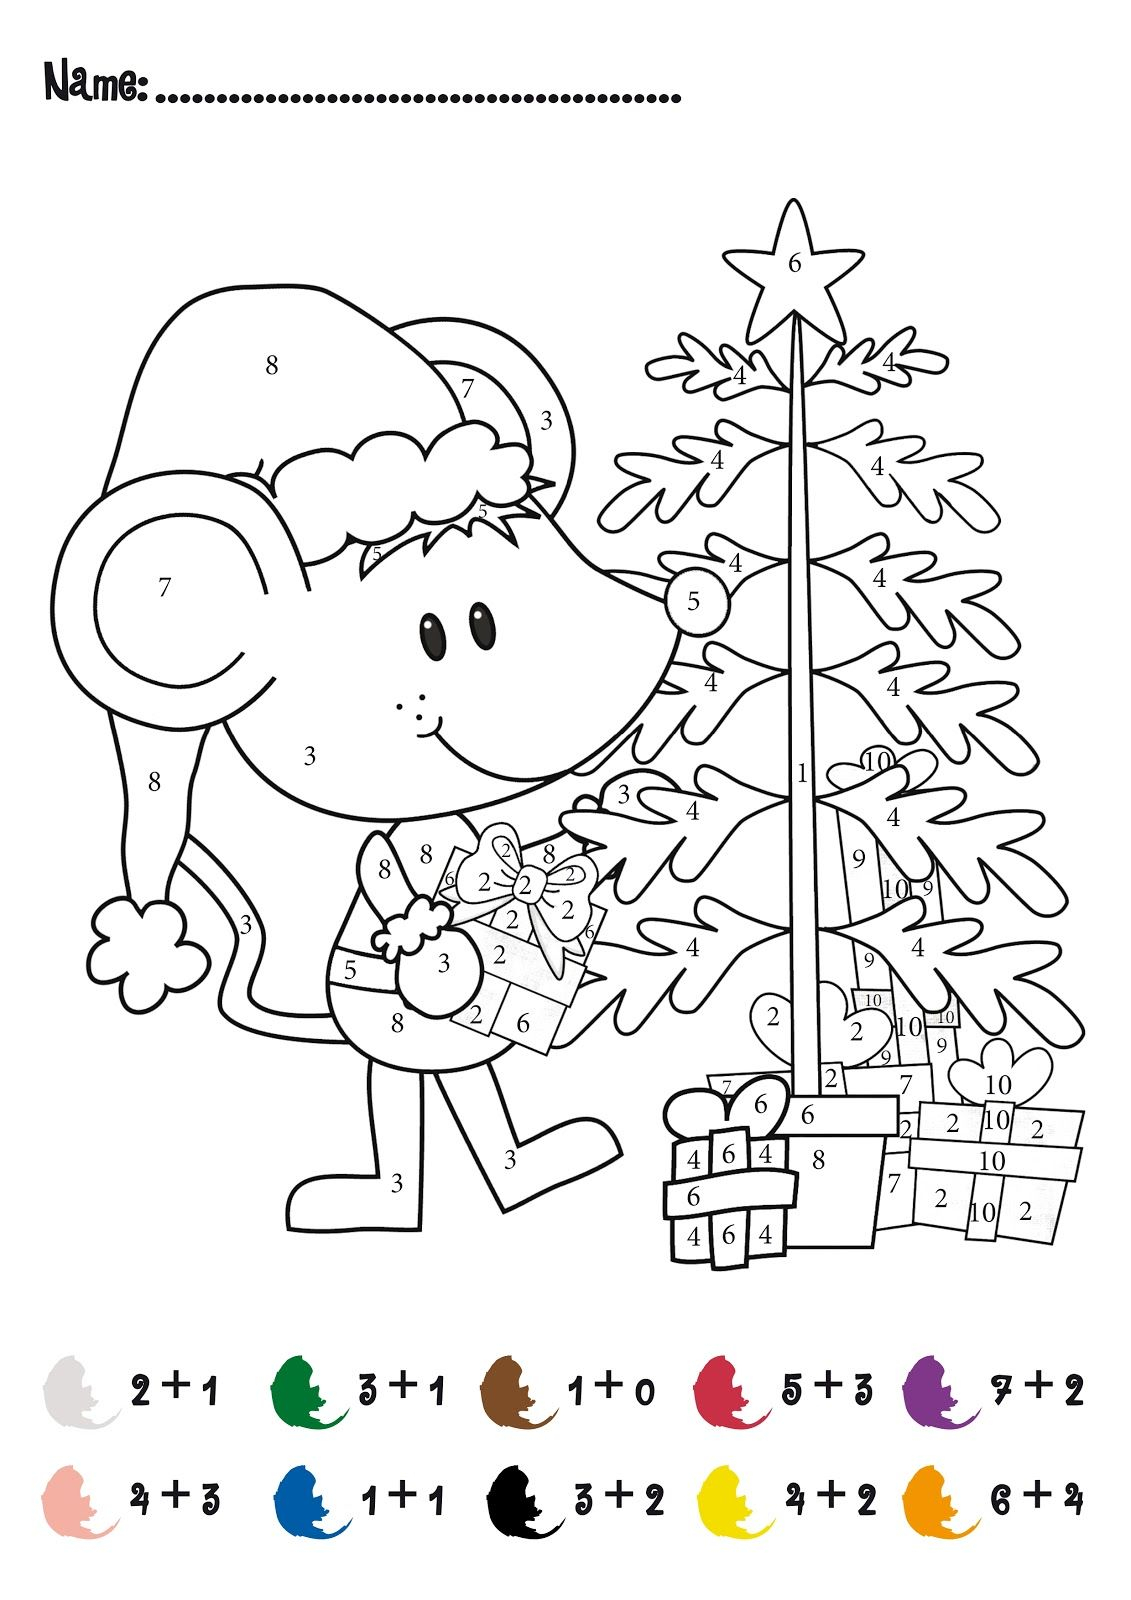 Colornumber Addition - Best Coloring Pages For Kids In